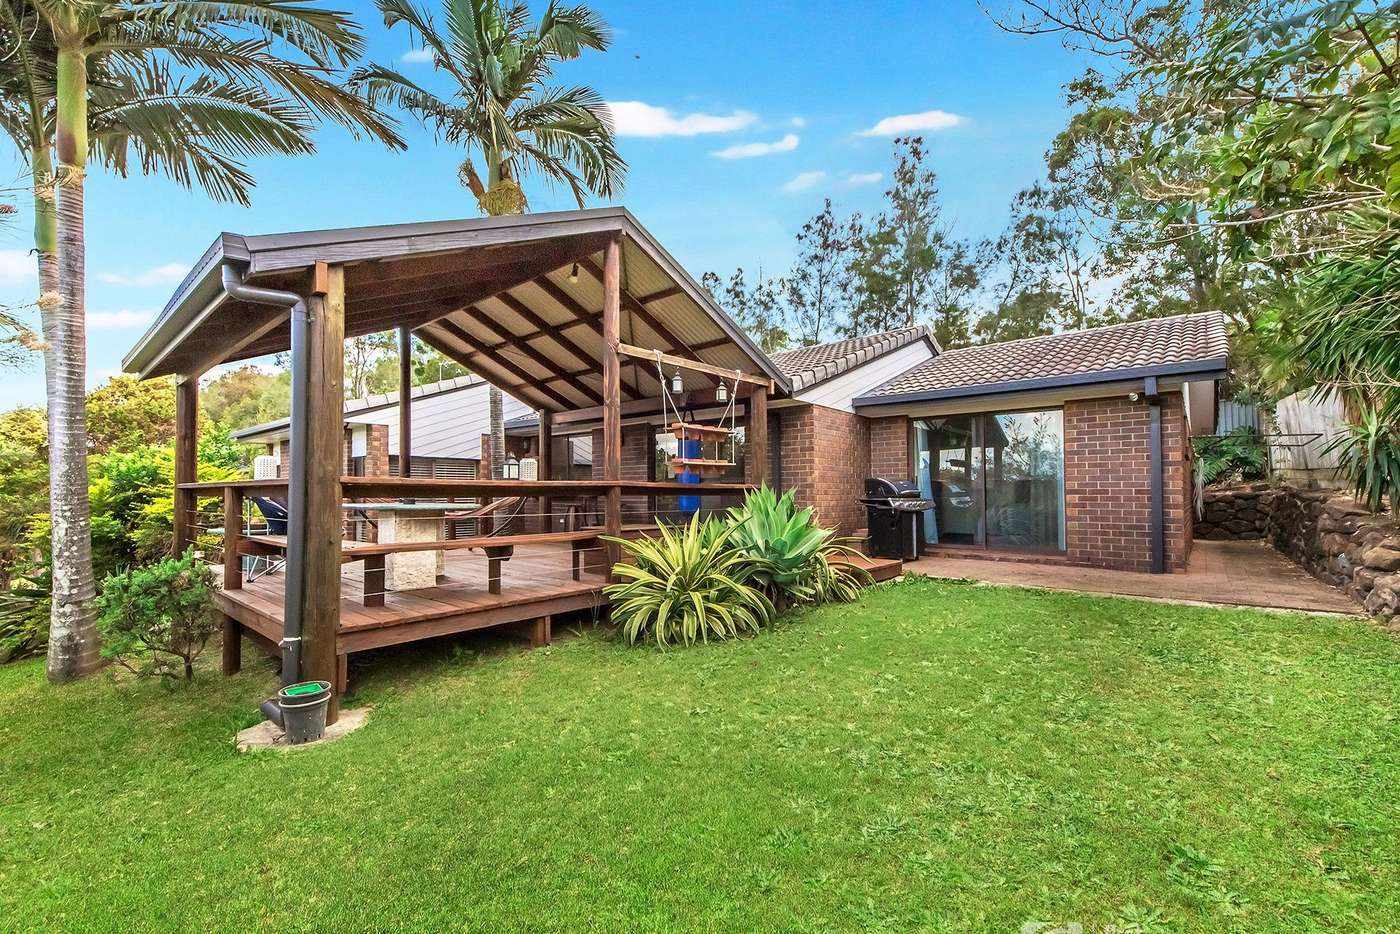 Main view of Homely house listing, 13 Pinehurst Place, Robina QLD 4226